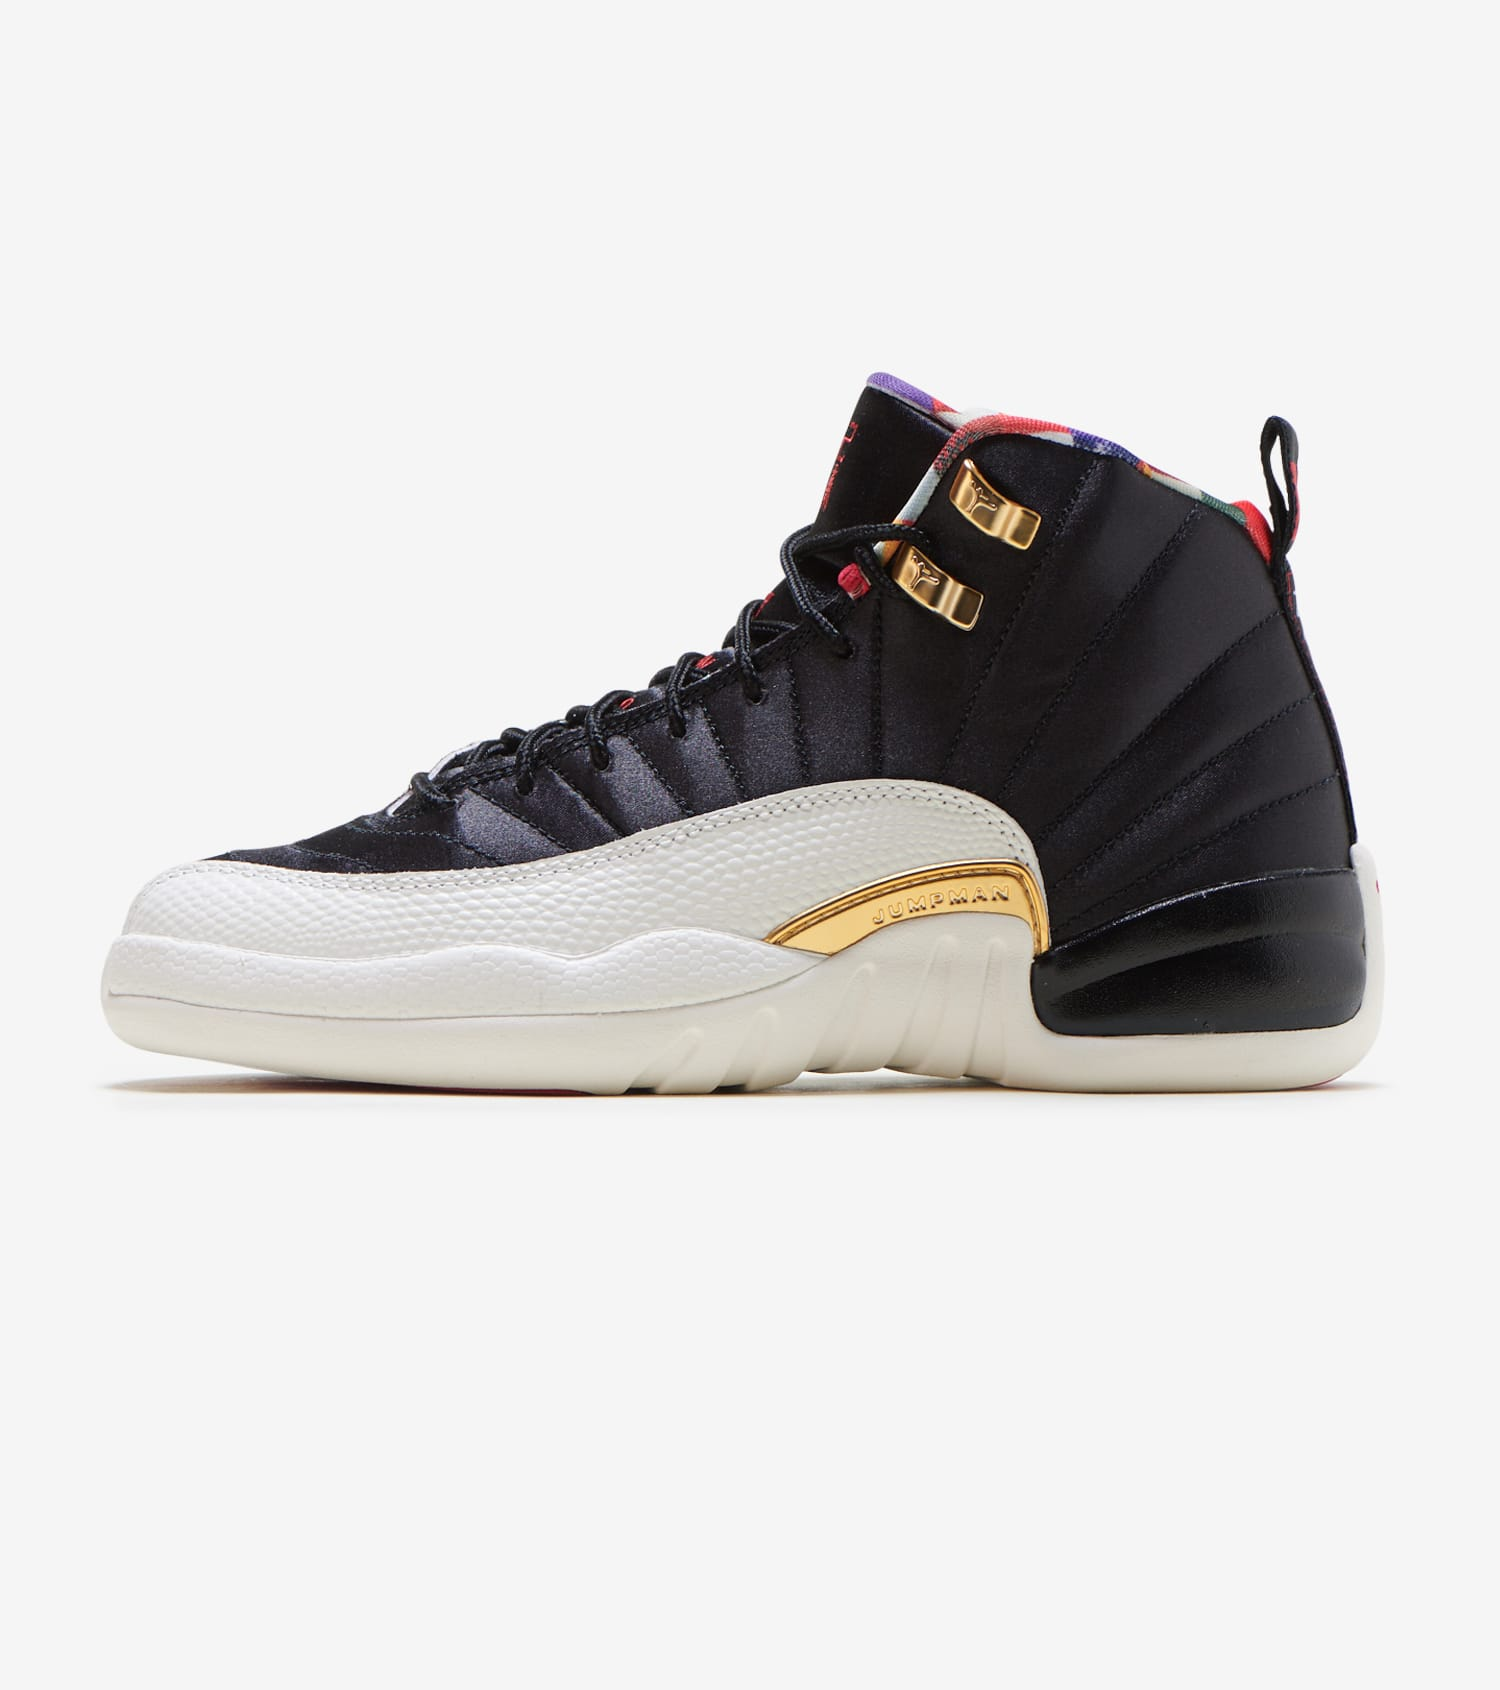 hot sale online 2cf00 88dc8 Retro 12 CNY